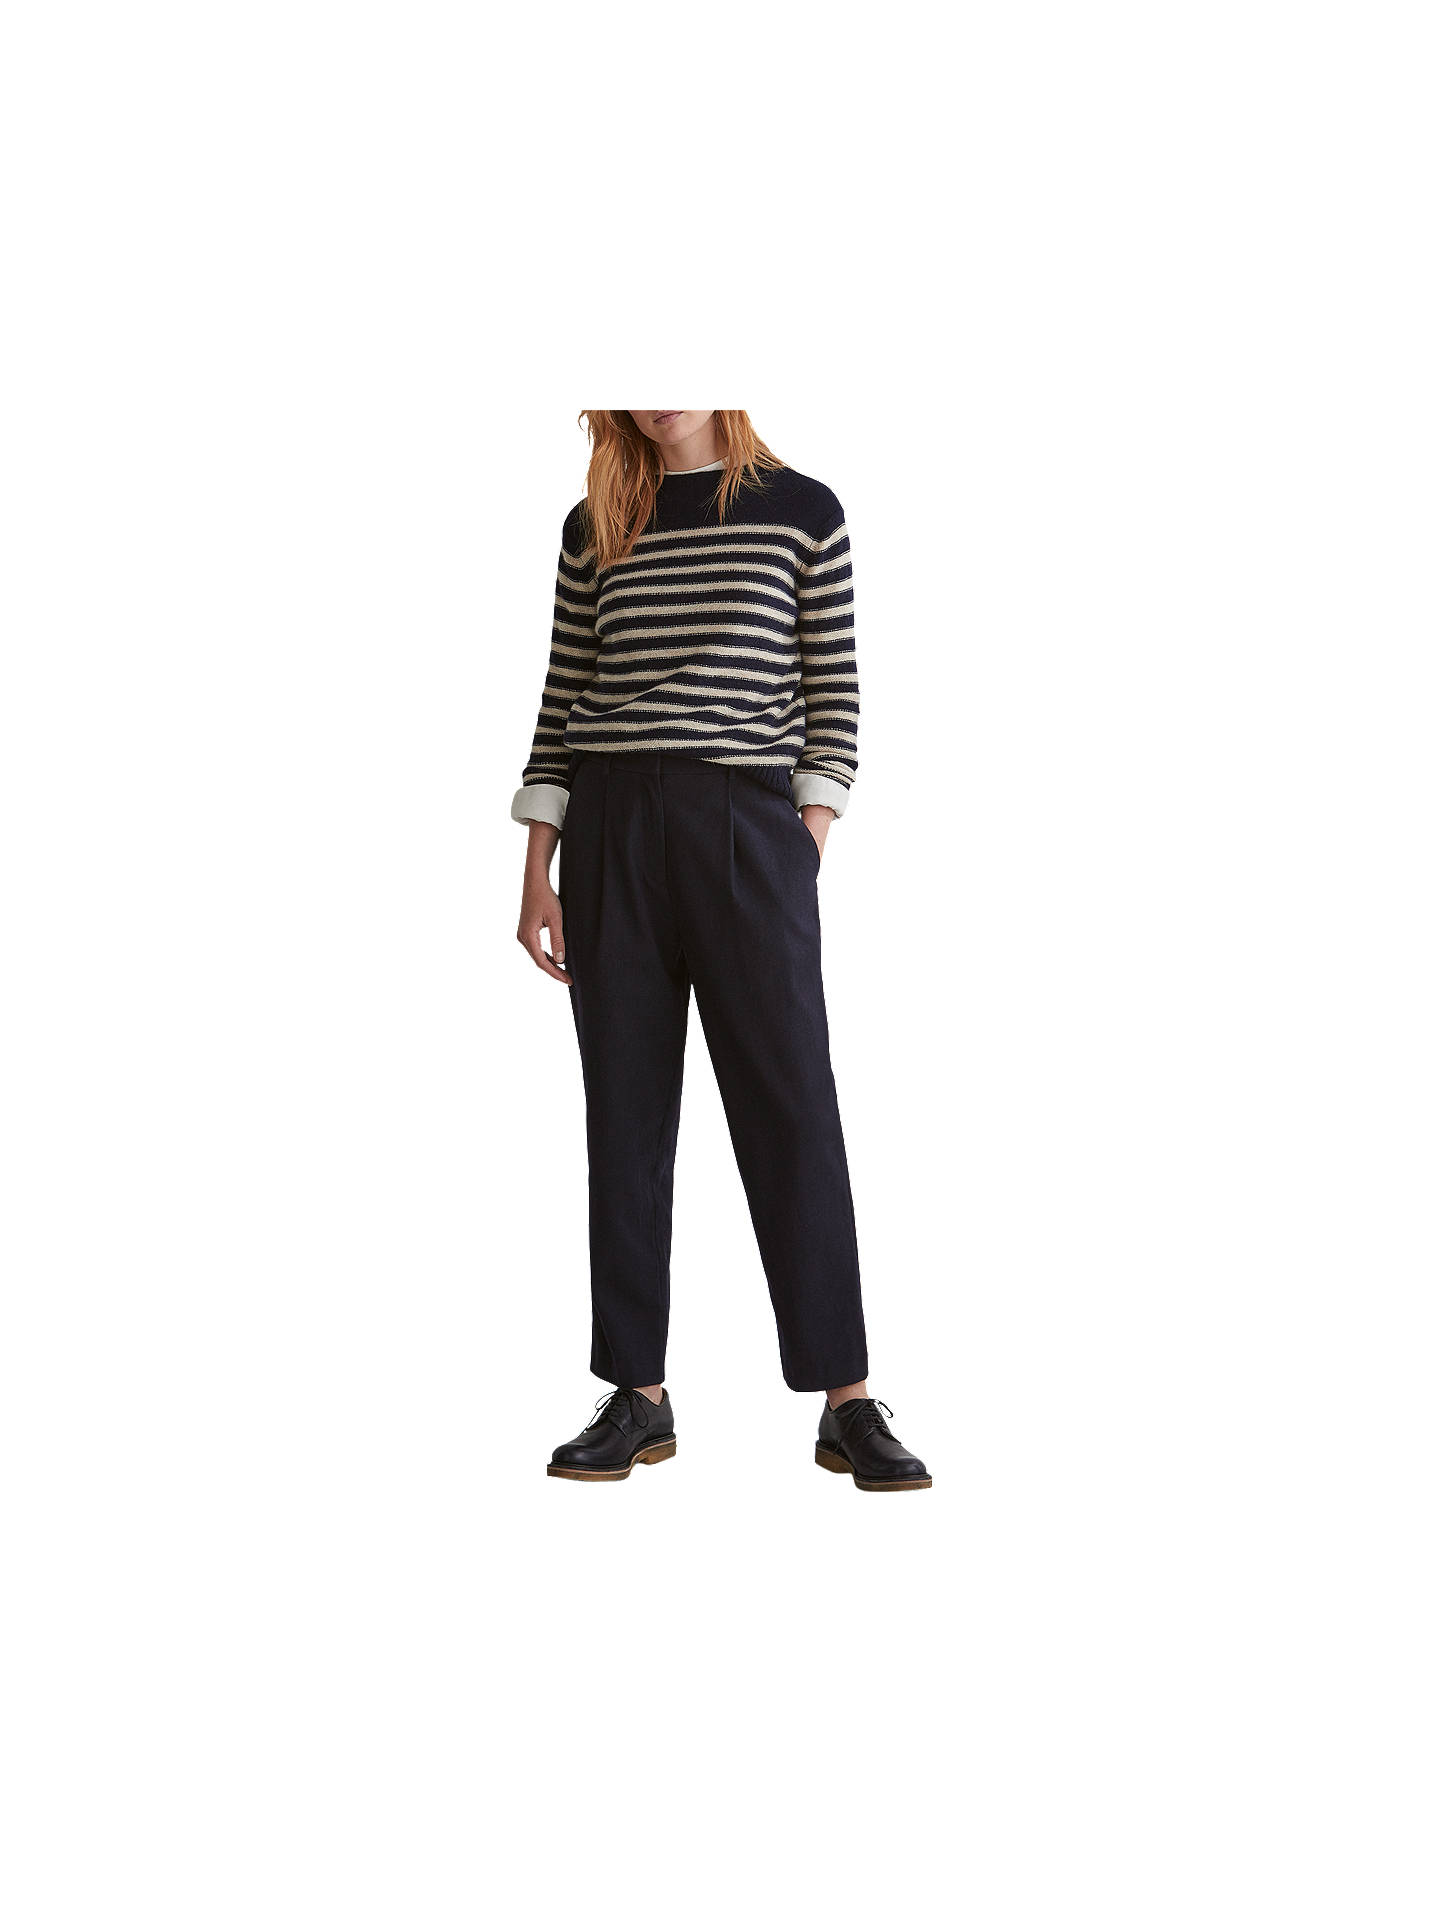 BuyToast Stripe Merino Wool Jumper, Navy/Ecru, 8 Online at johnlewis.com